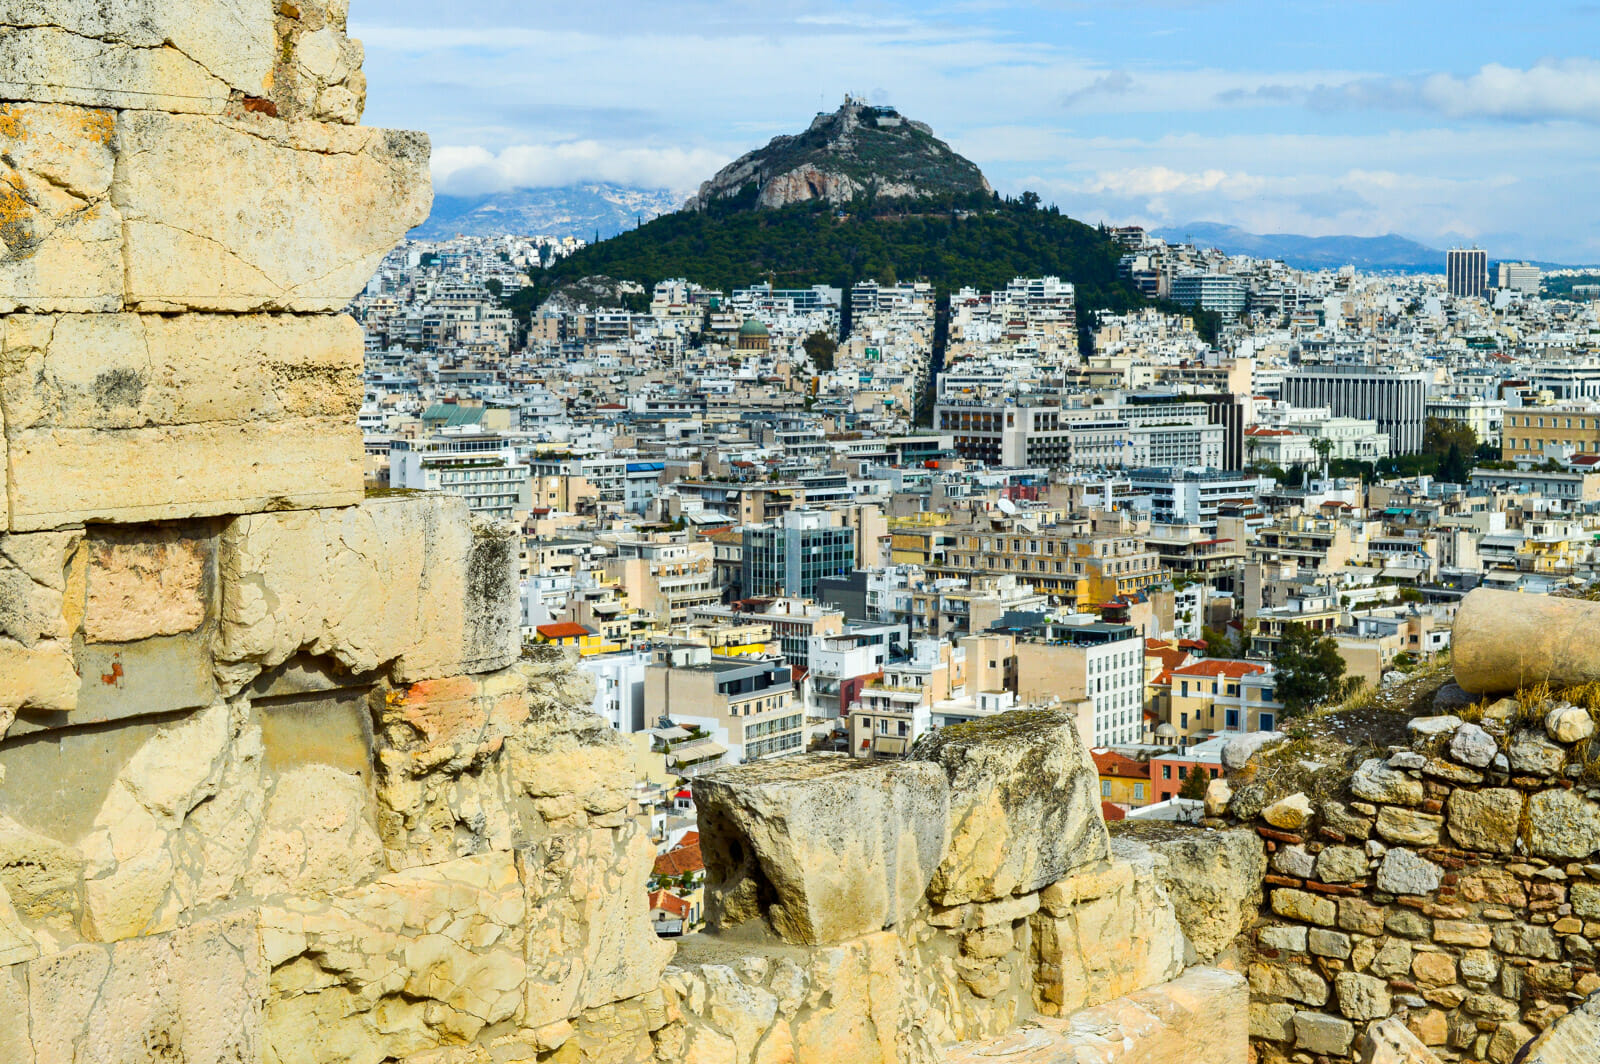 Athens as seen from the Parthenon